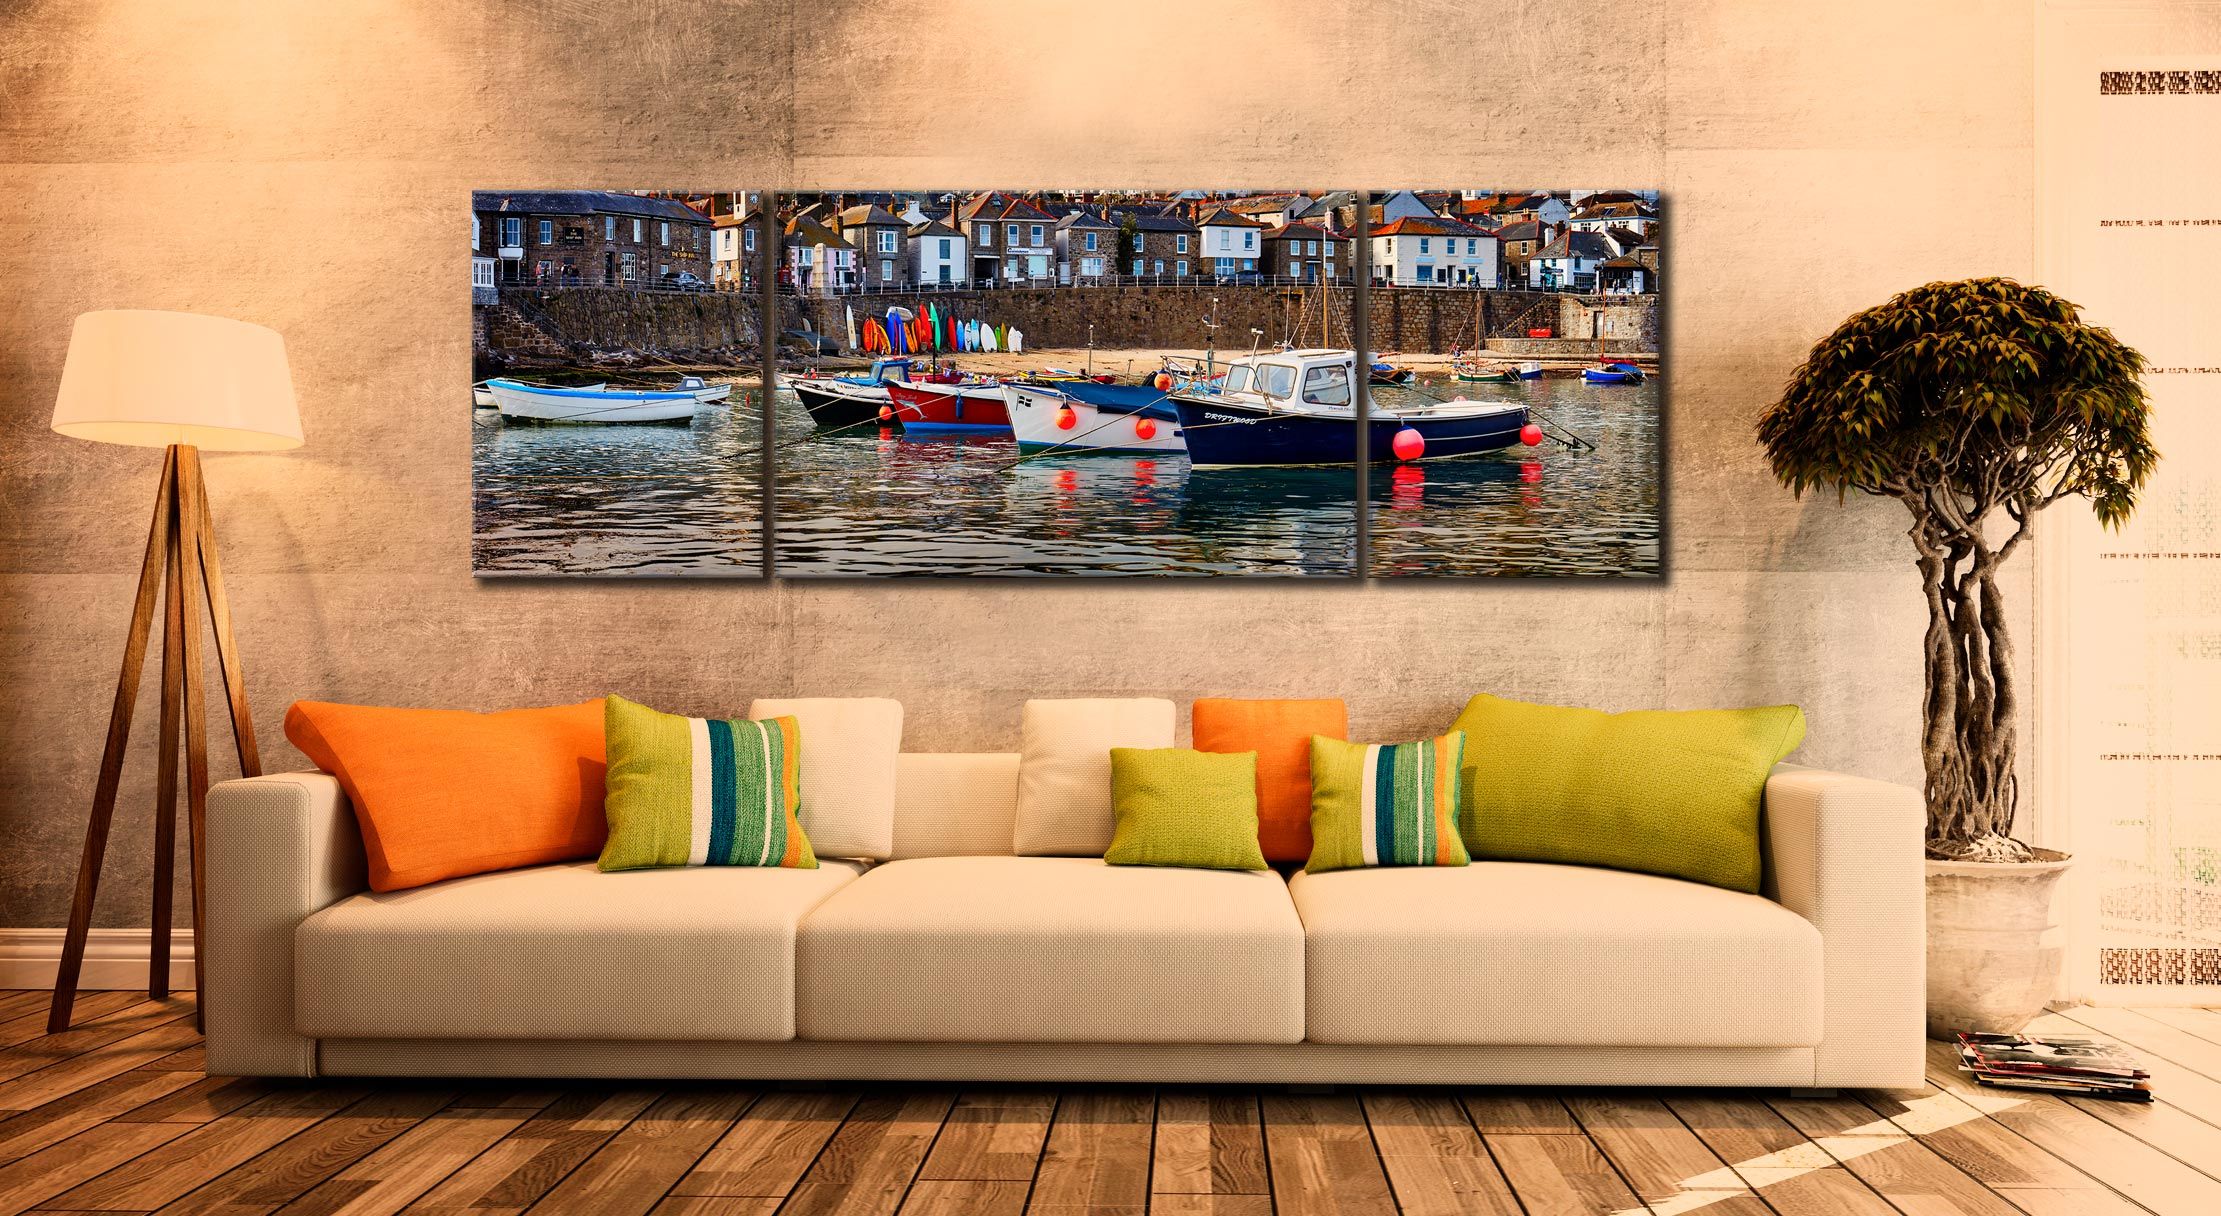 Mousehole Harbour Boats - 3 Panel Wide Mid Canvas on Wall